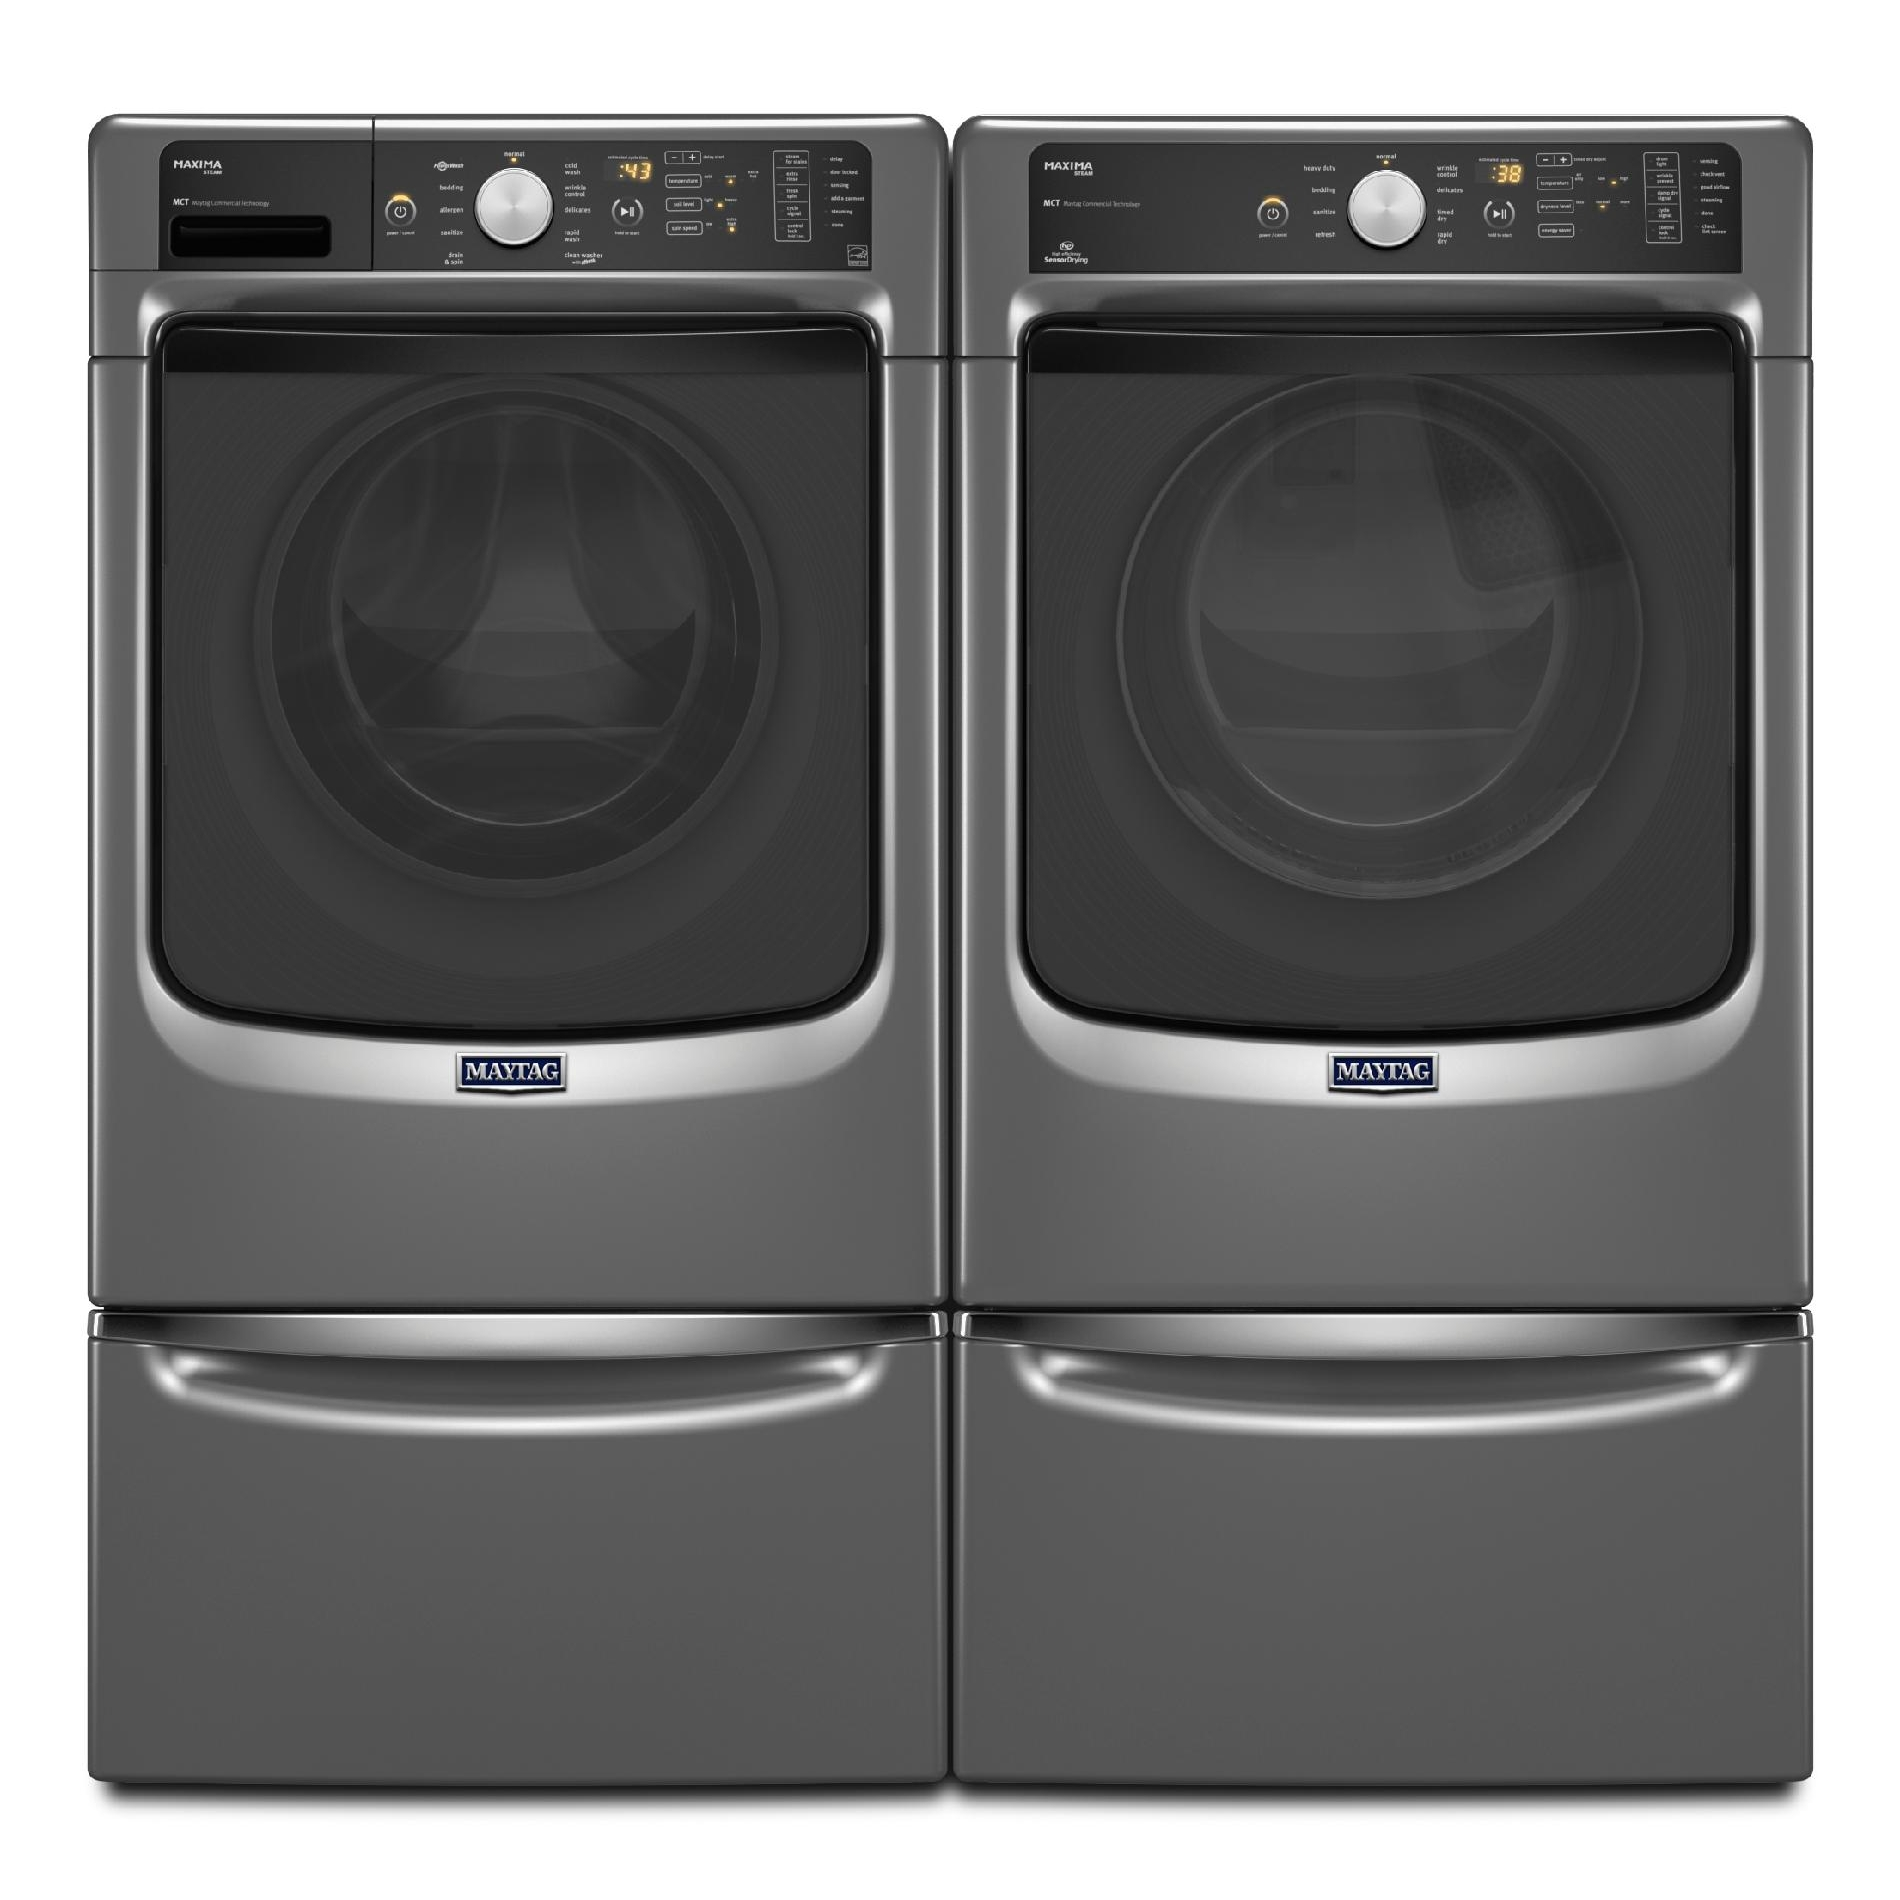 Maytag 7.4 cu. ft. Maxima® Electric Dryer w/ Steam Cycle - Metallic Slate